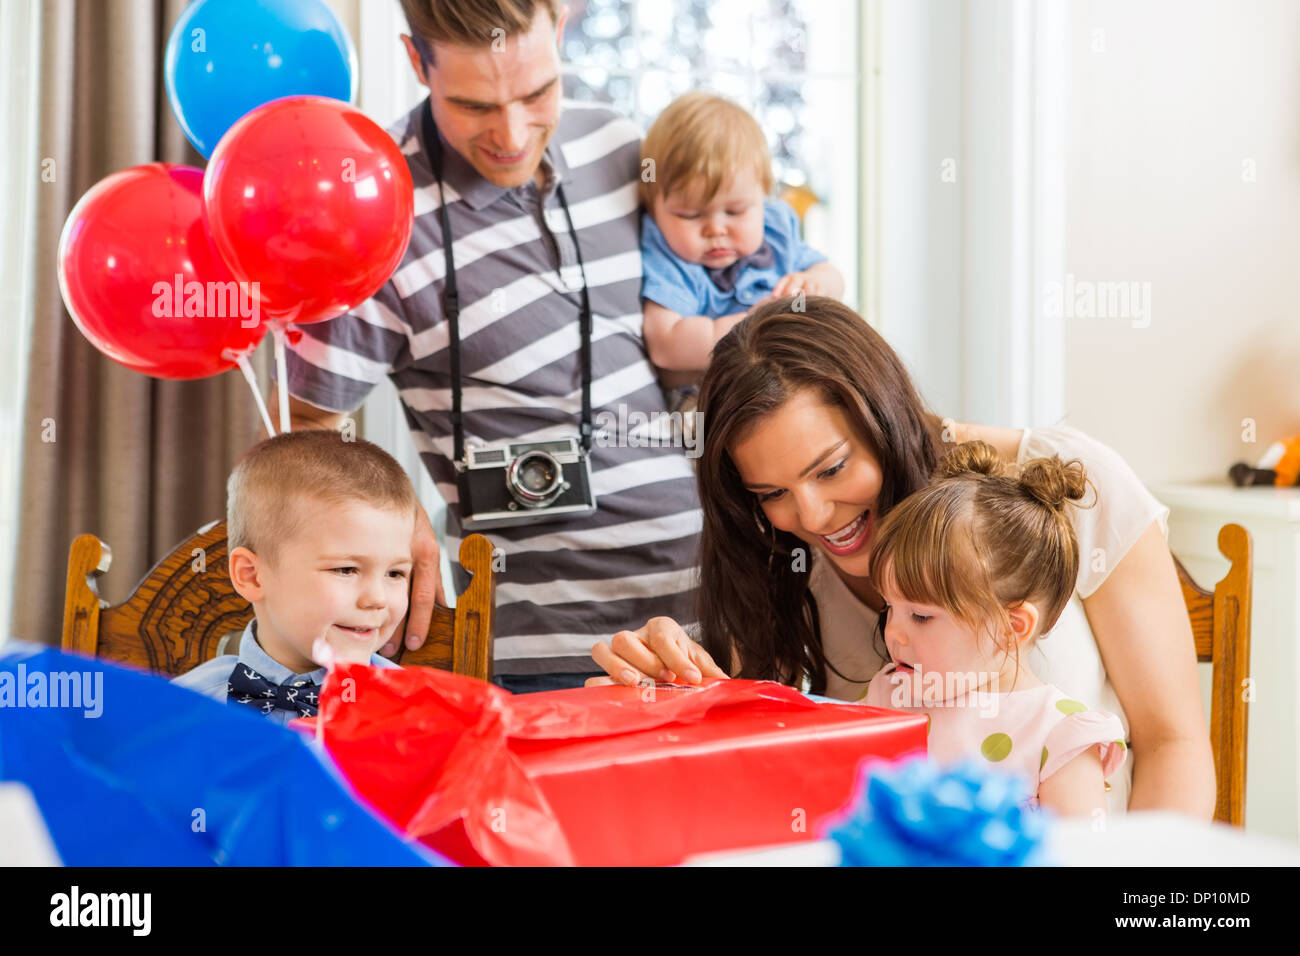 Family Opening Birthday Present At Home - Stock Image